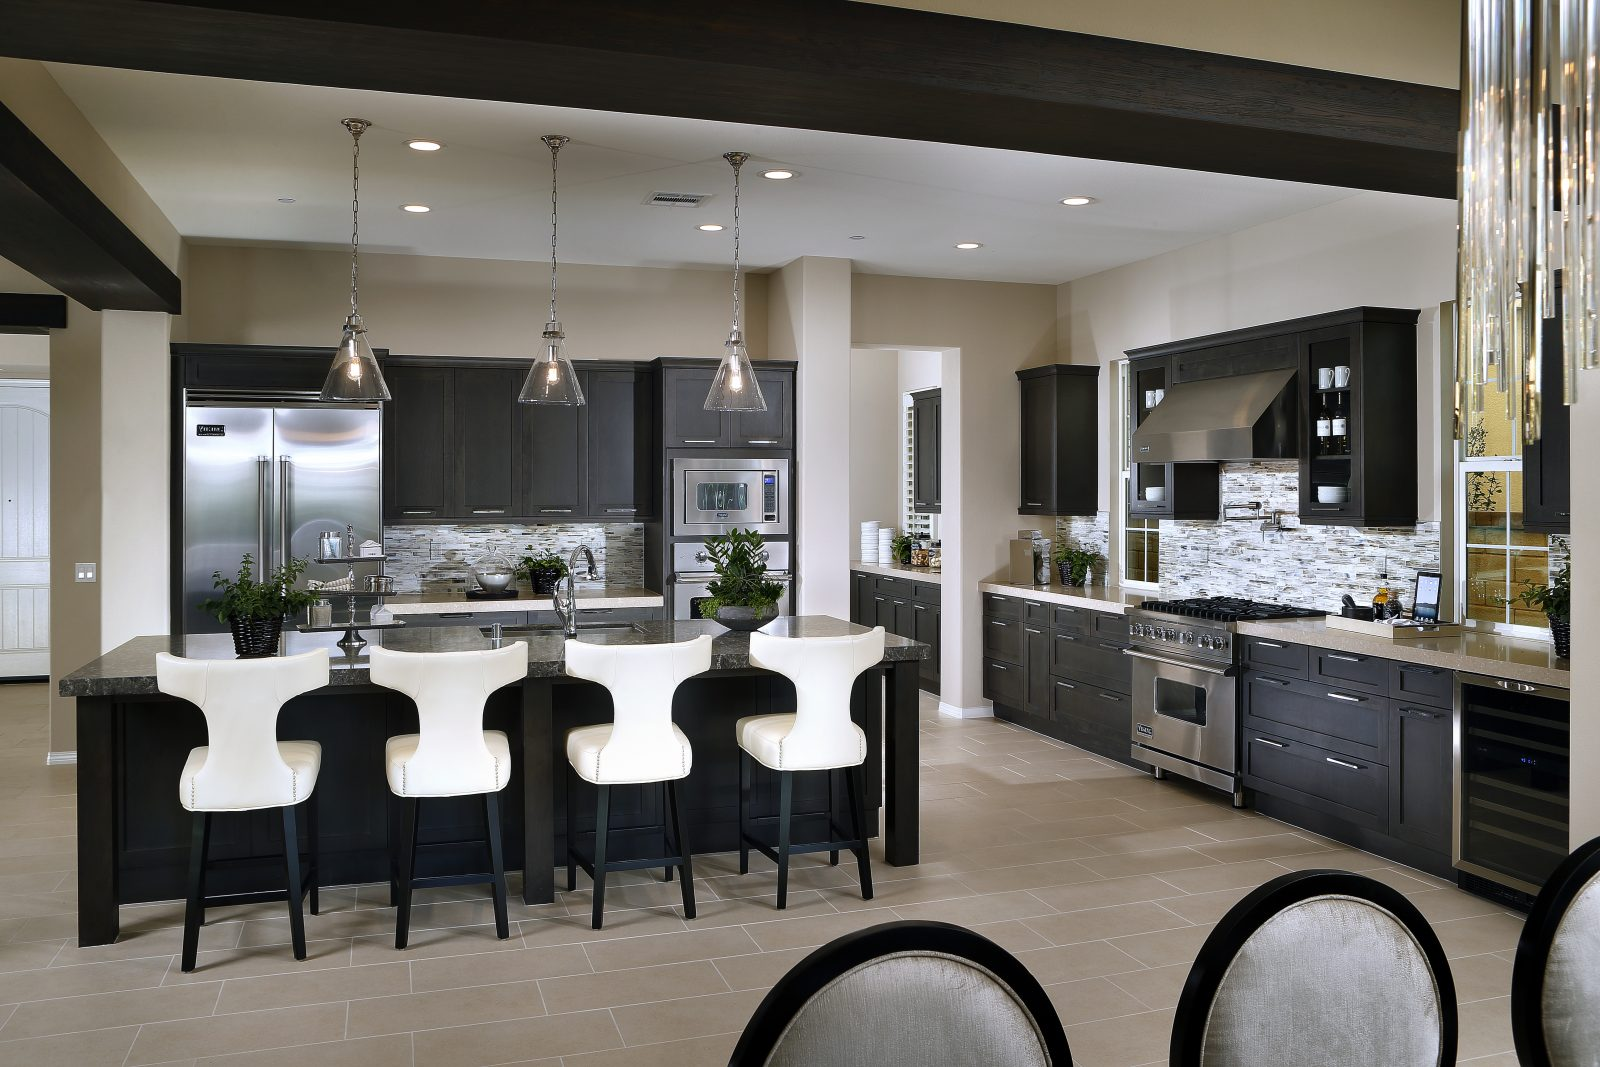 Santa Clarita New Homes for Sale - Kitchen